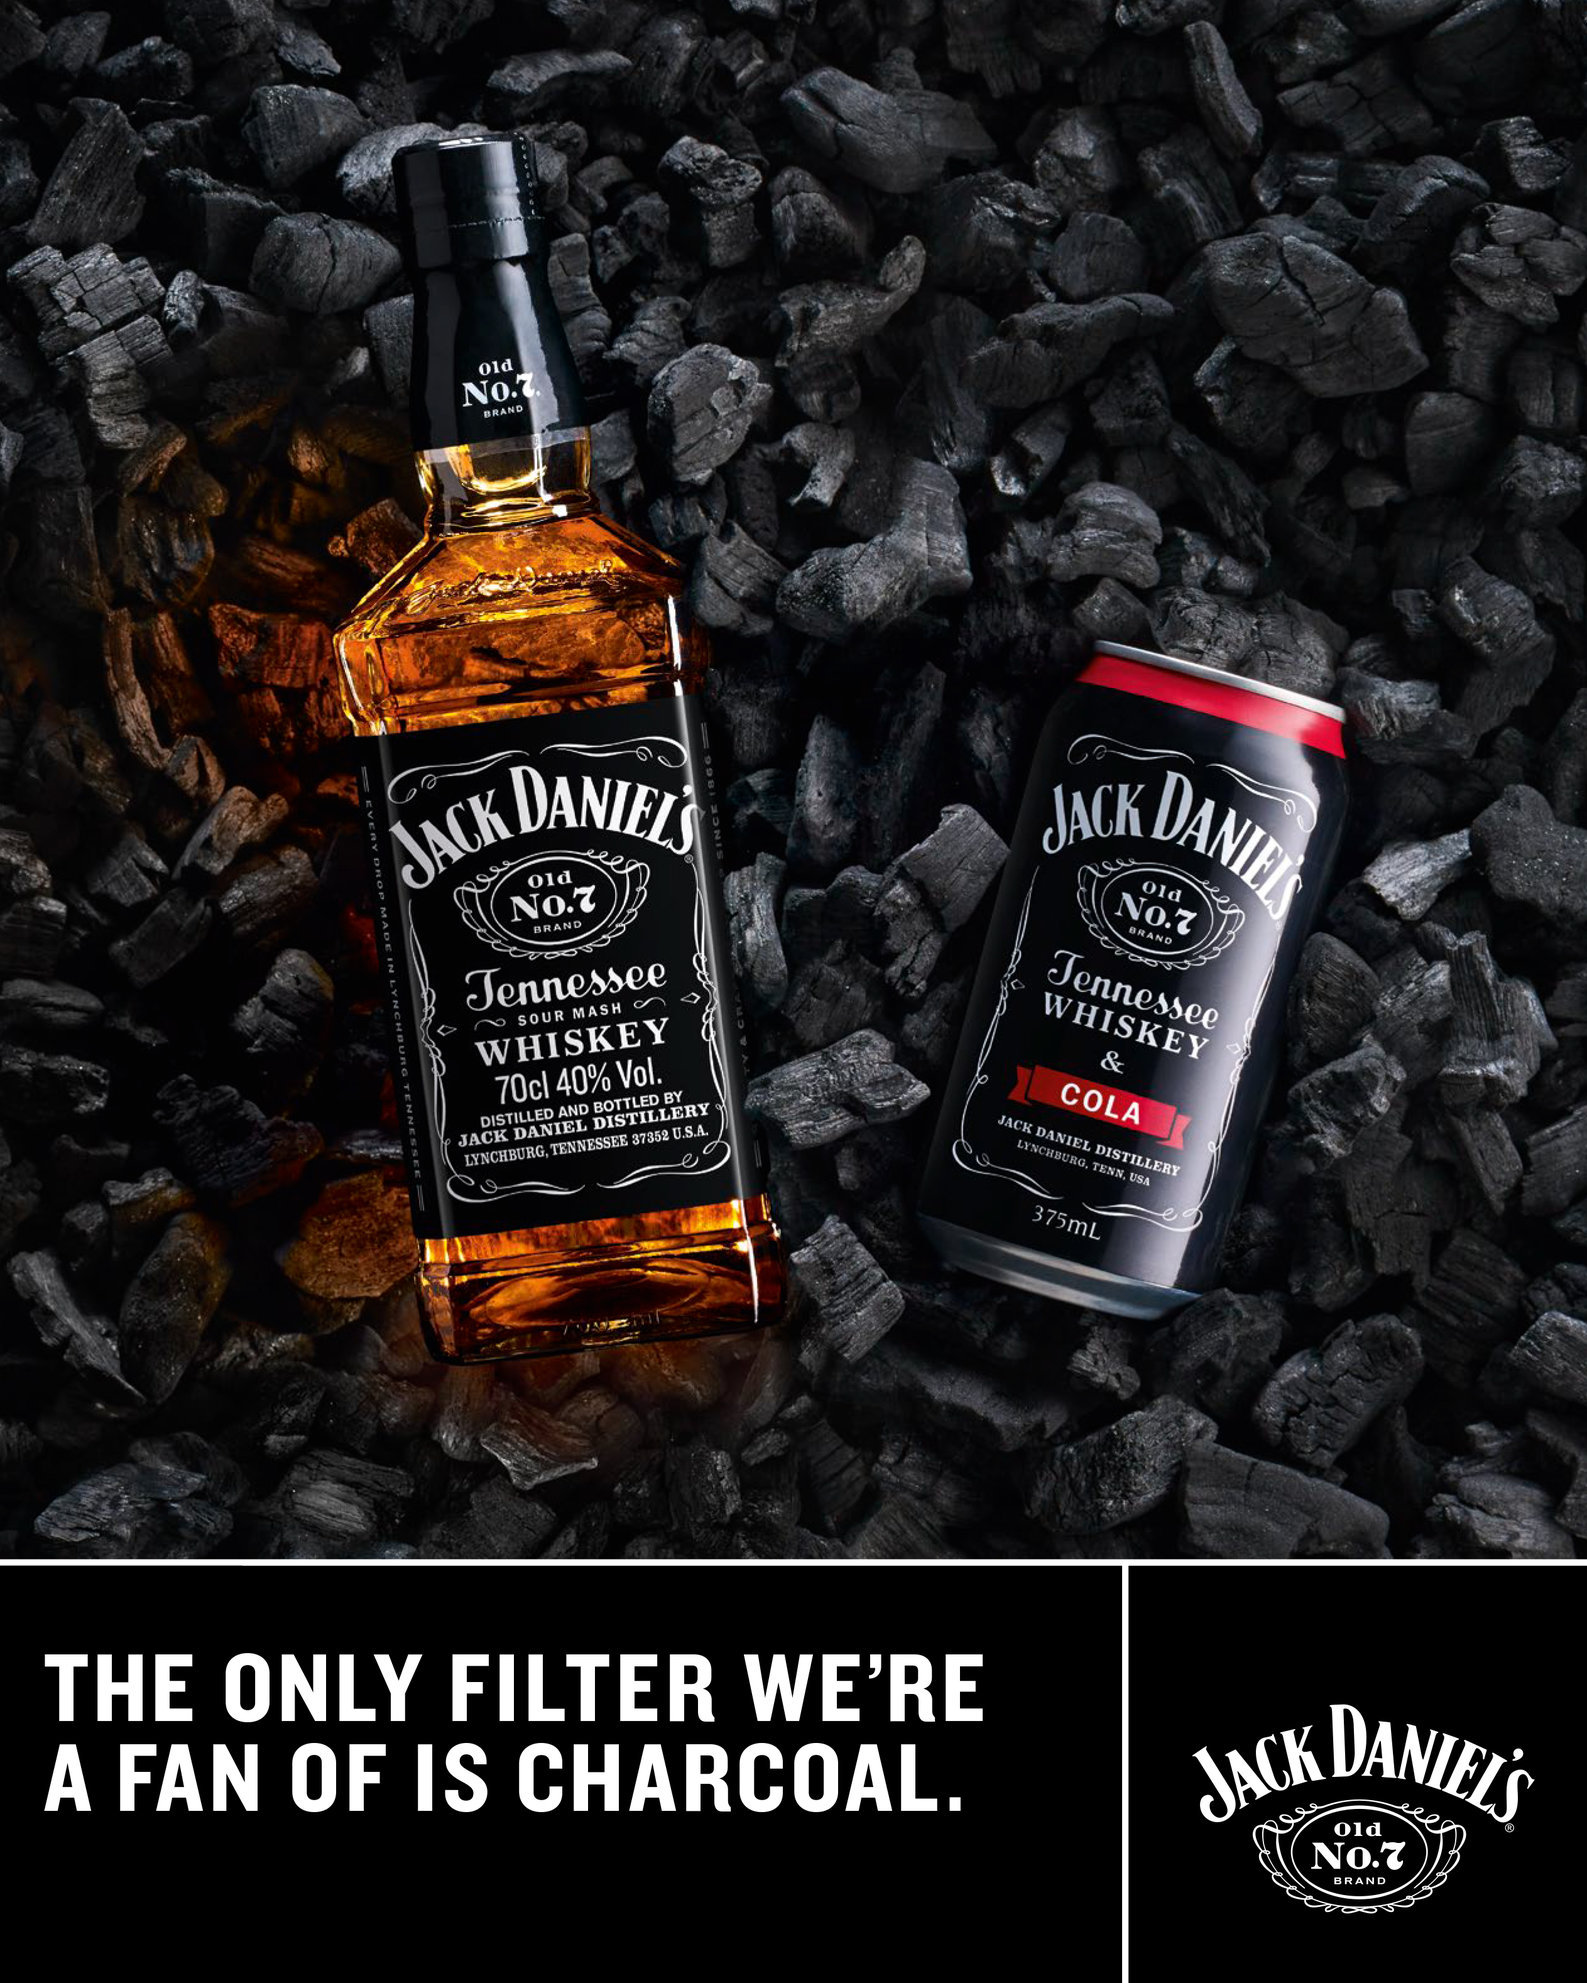 Andy Lewis Photography - beverage photography Sydney Advertsising photographer Jack Daniels Charcoal.jpg